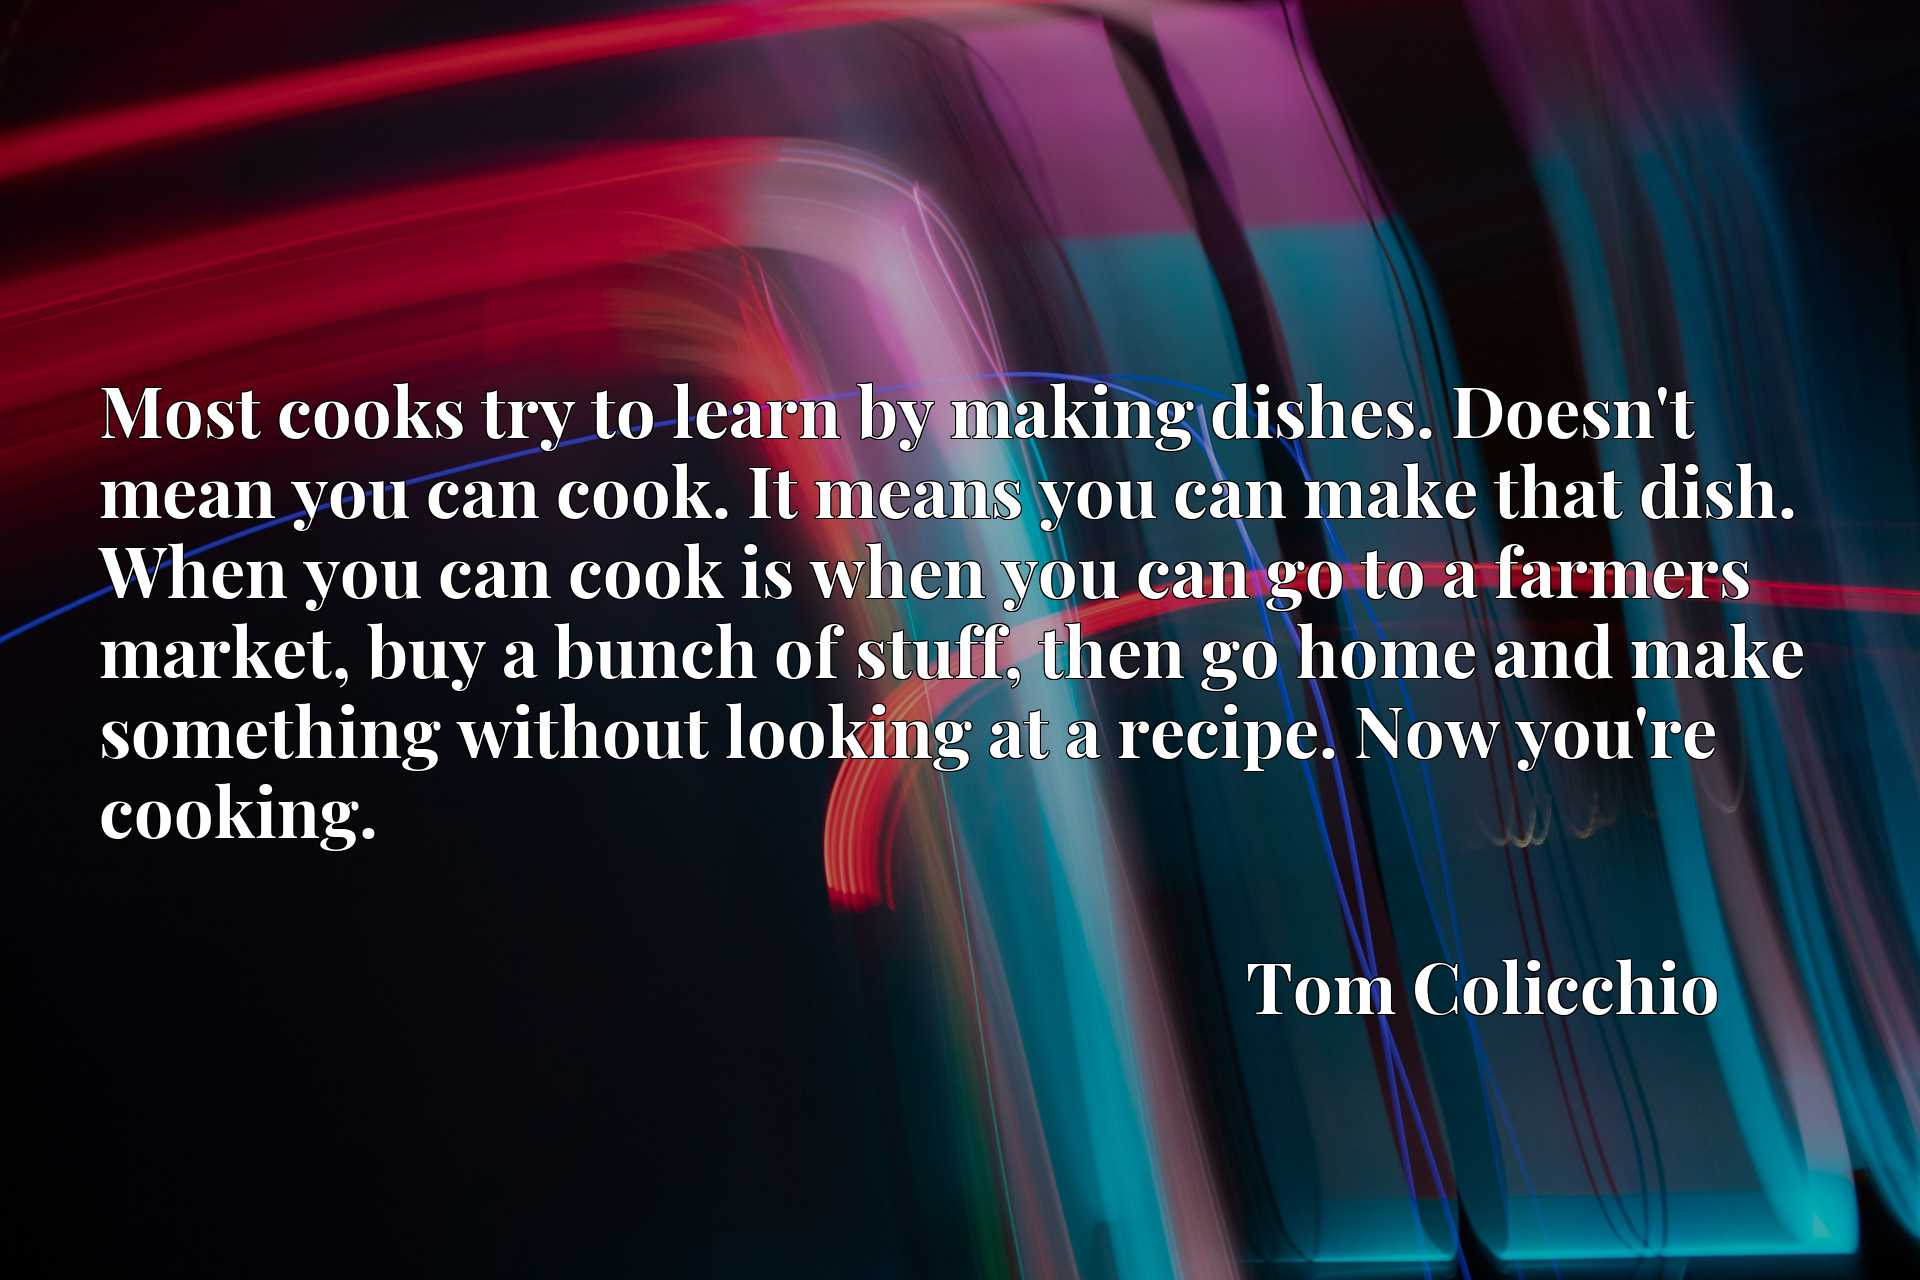 Most cooks try to learn by making dishes. Doesn't mean you can cook. It means you can make that dish. When you can cook is when you can go to a farmers market, buy a bunch of stuff, then go home and make something without looking at a recipe. Now you're cooking.